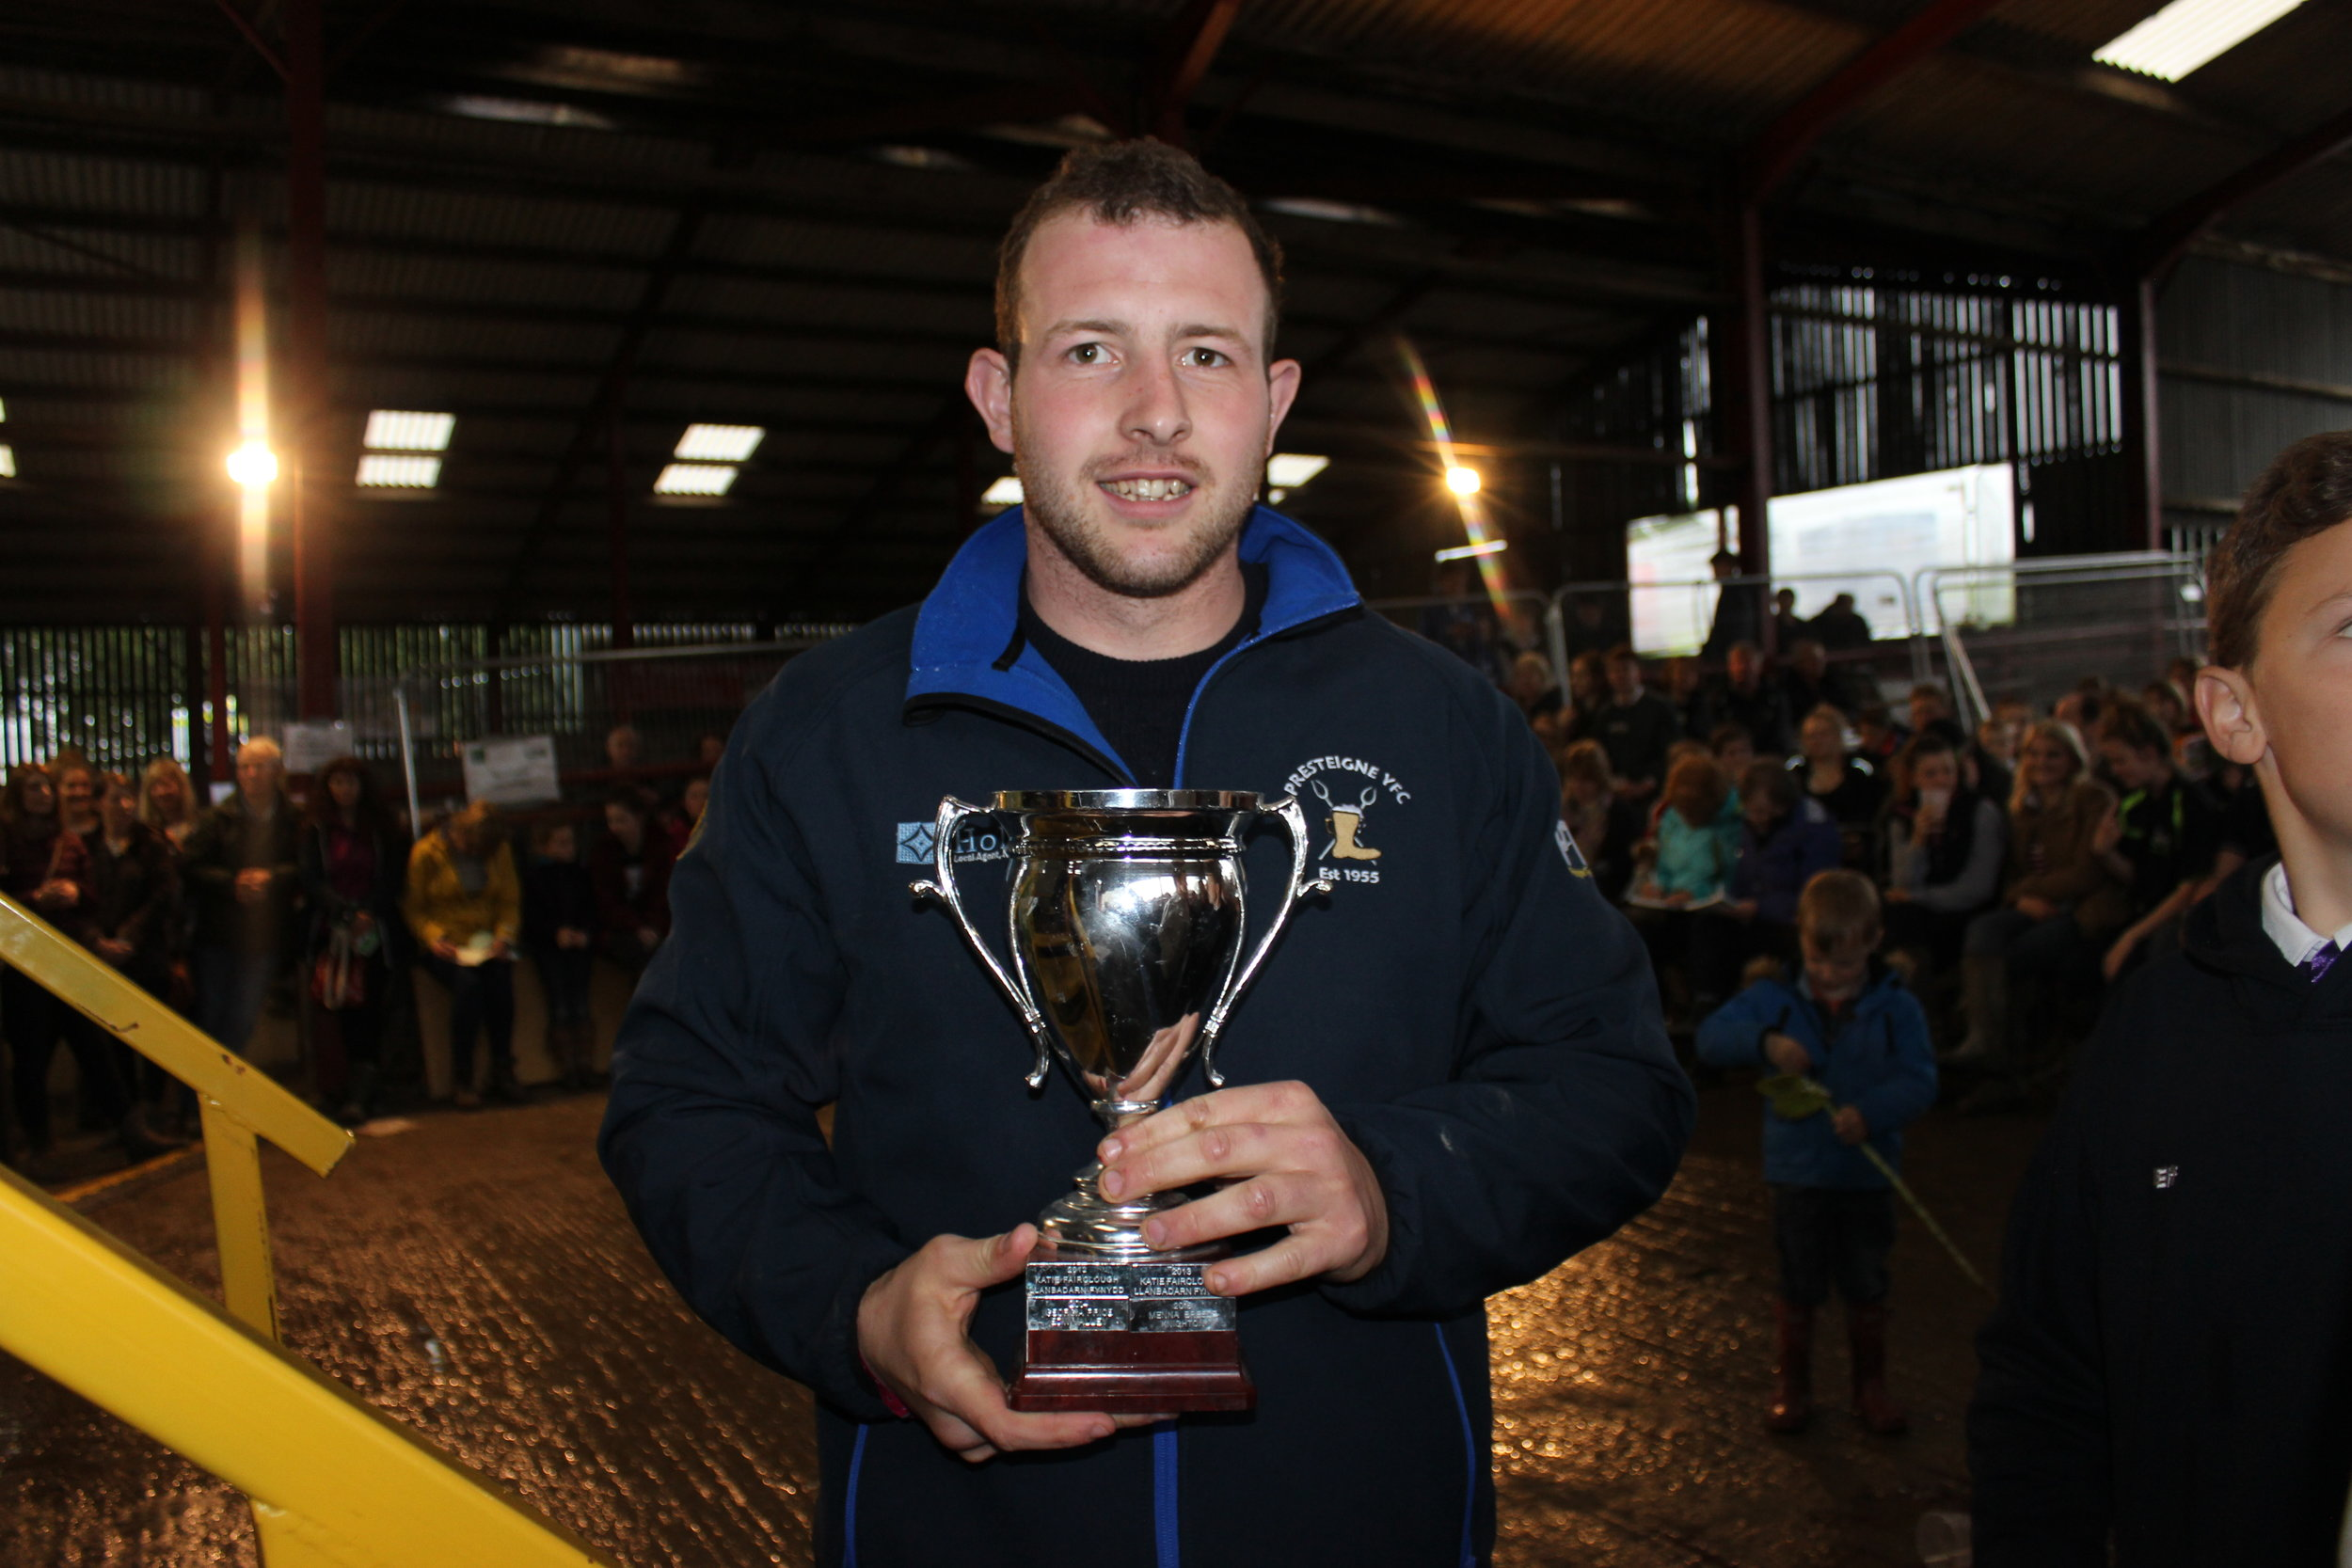 Owen Davies, Presteigne YFC - Andrew & Janet Abberley Cup (Solo Top of the Pops)